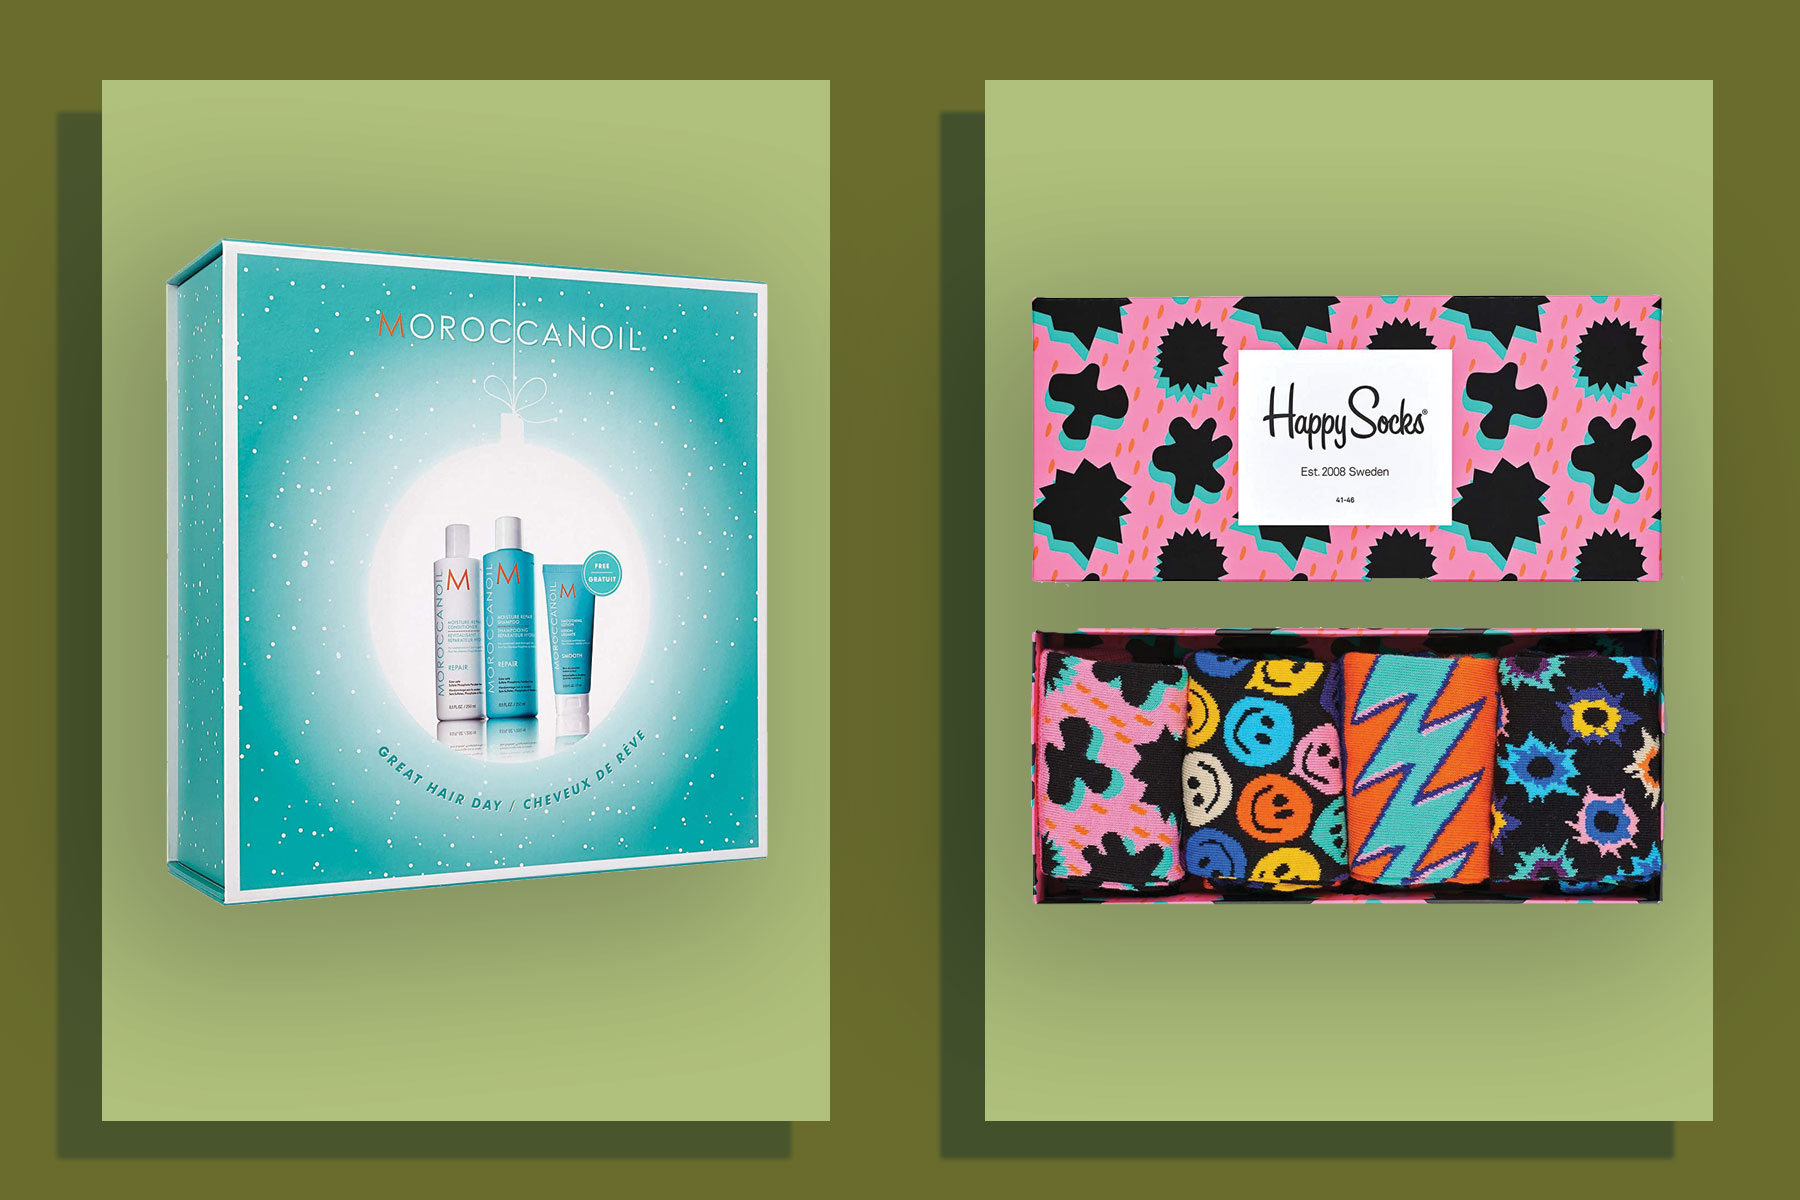 Haircare and sock gift sets